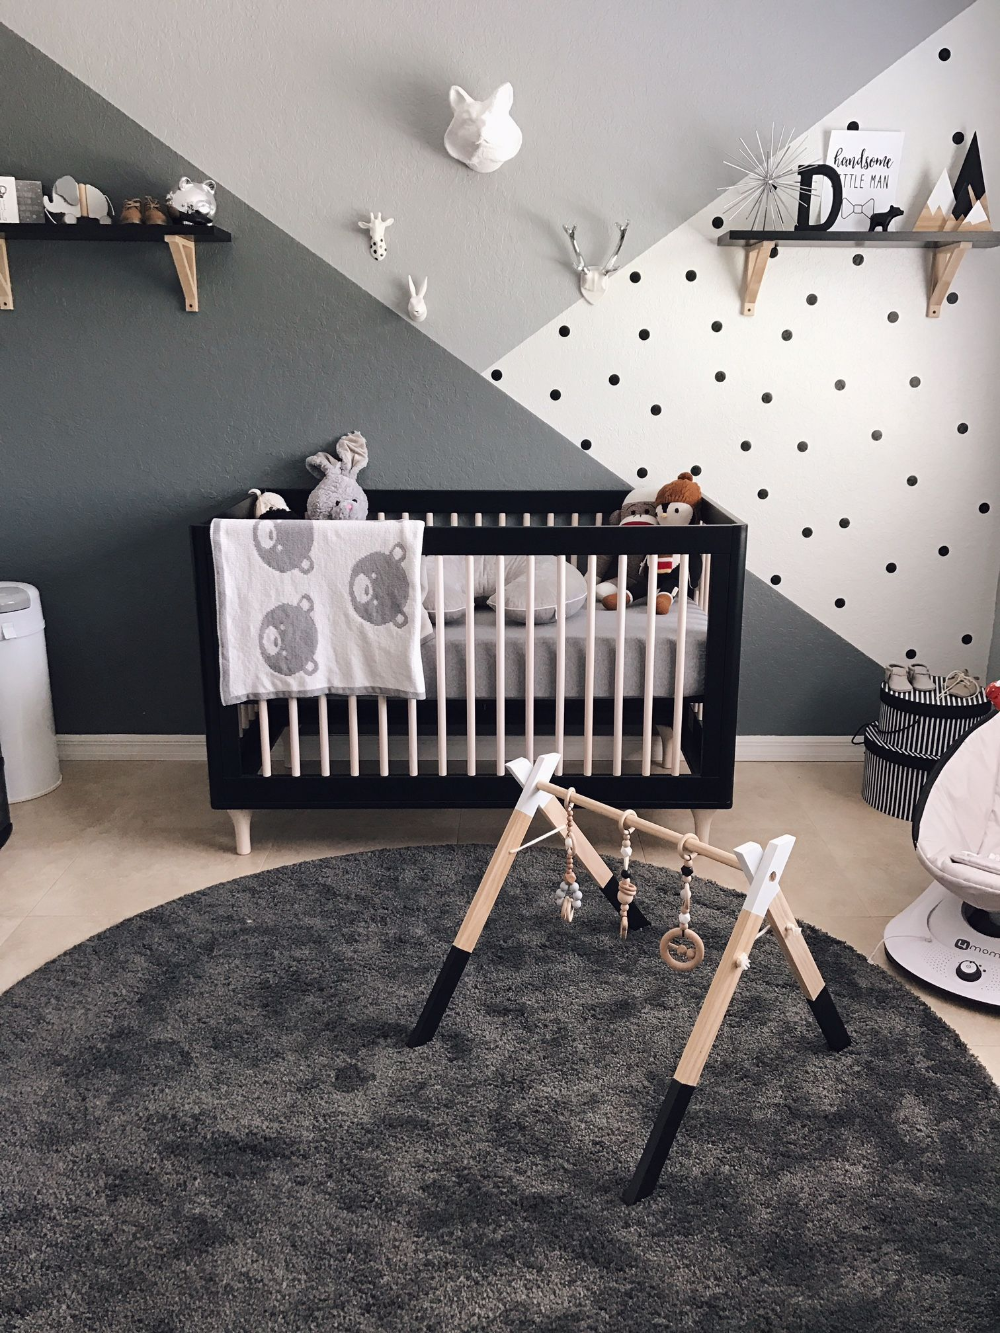 Astounding Black Accents Wall Paint For Modern Baby Room Idea Feat White Cradles And Agreeable Red Runner Ru Baby Room Colors Nursery Baby Room Baby Room Decor